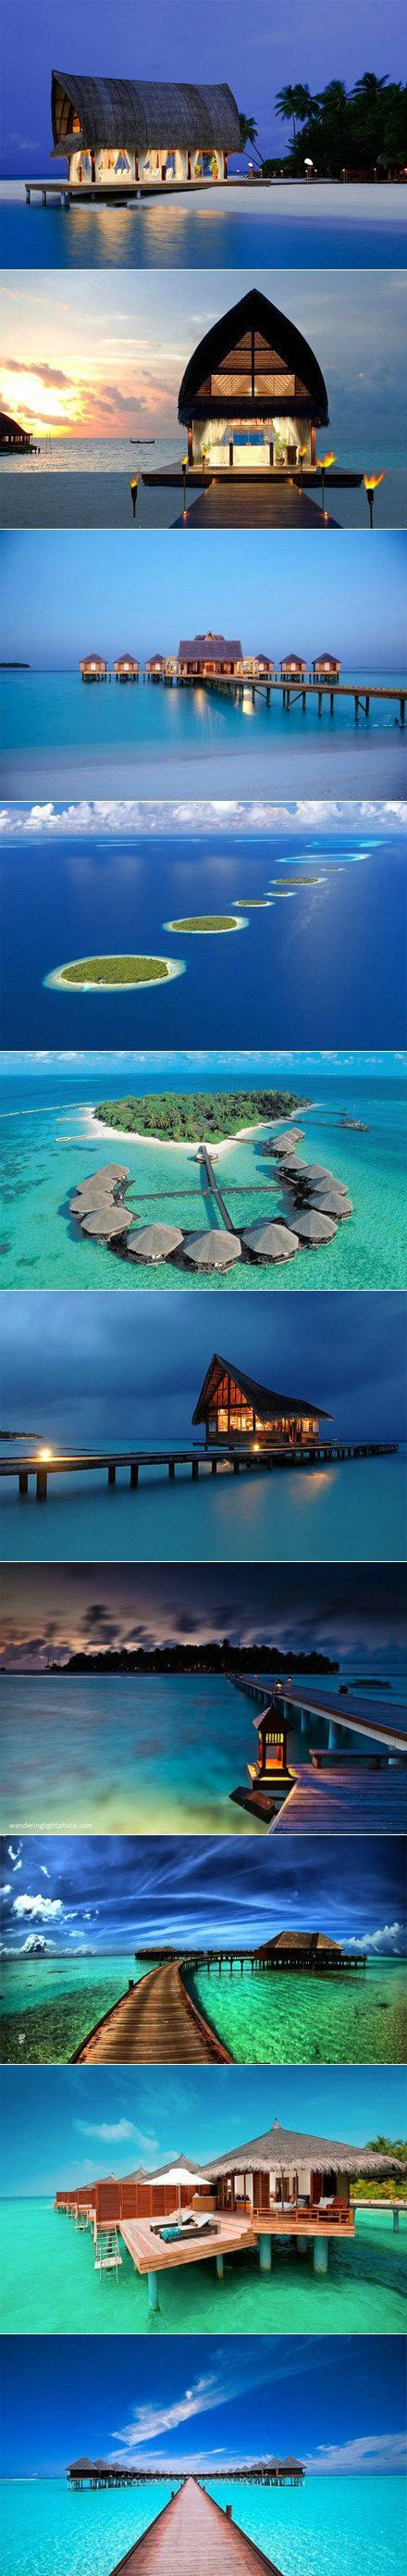 My dream vacation! Bora Bora